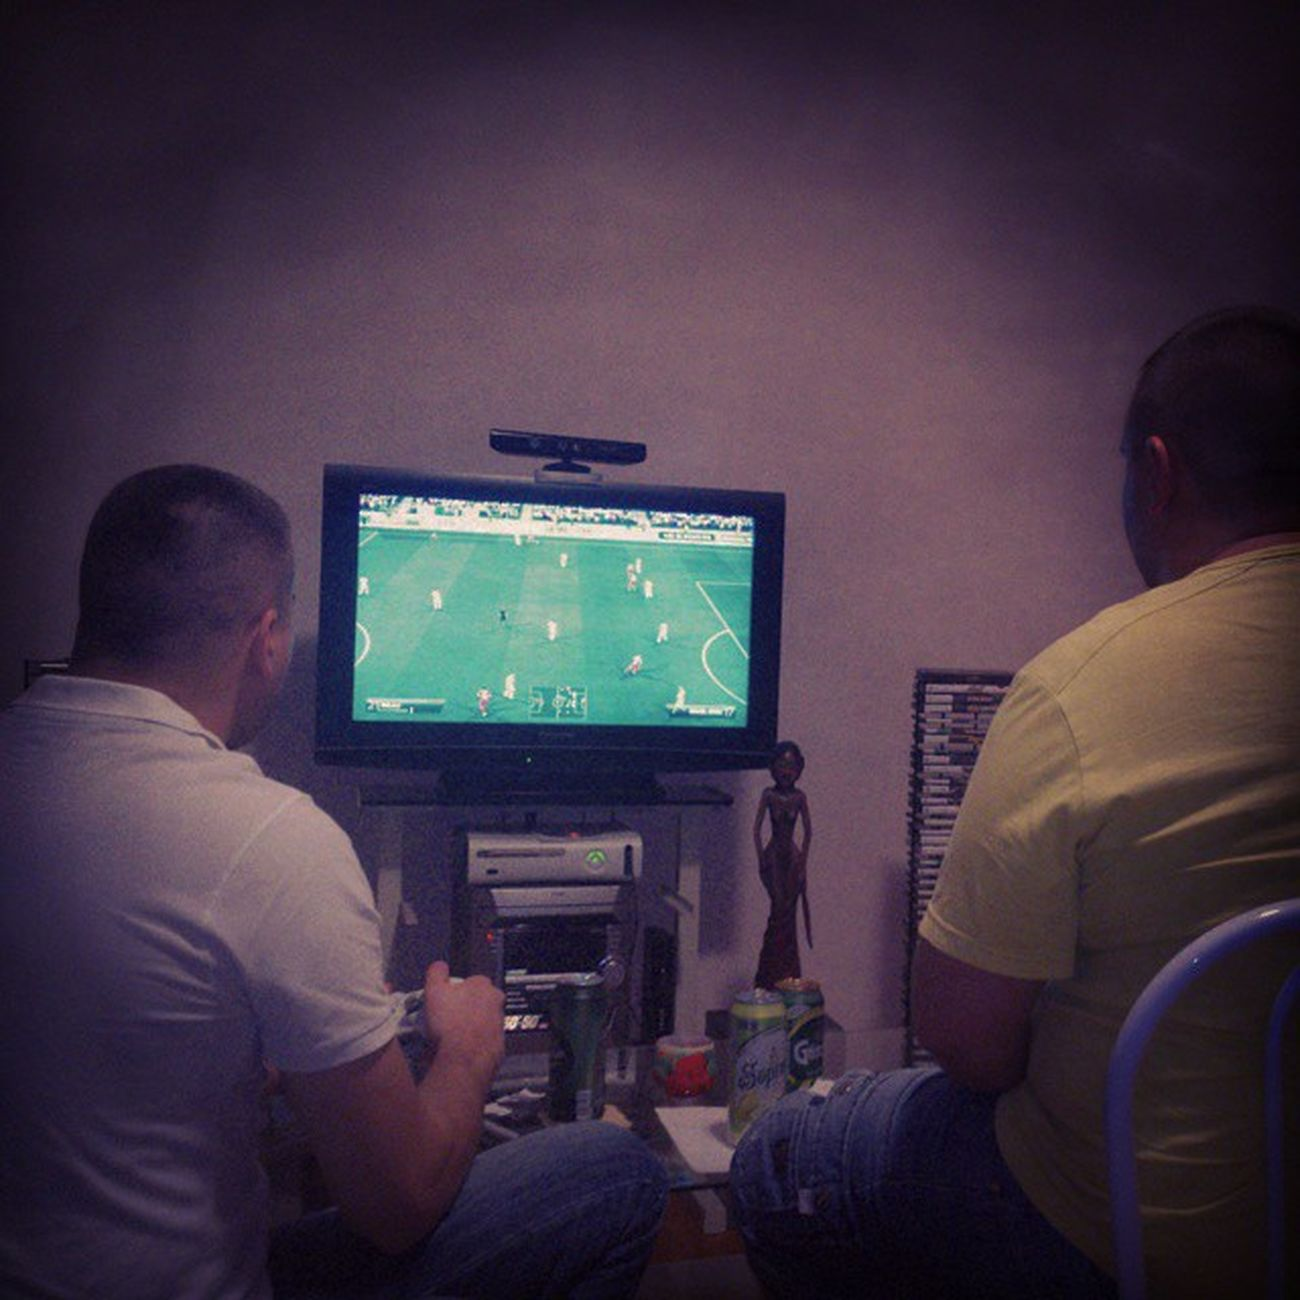 Xbox party Xbox Xbox360 Fifa Fifa14 Game Friends HaveFun Lőőődddddmárbebazdmeg